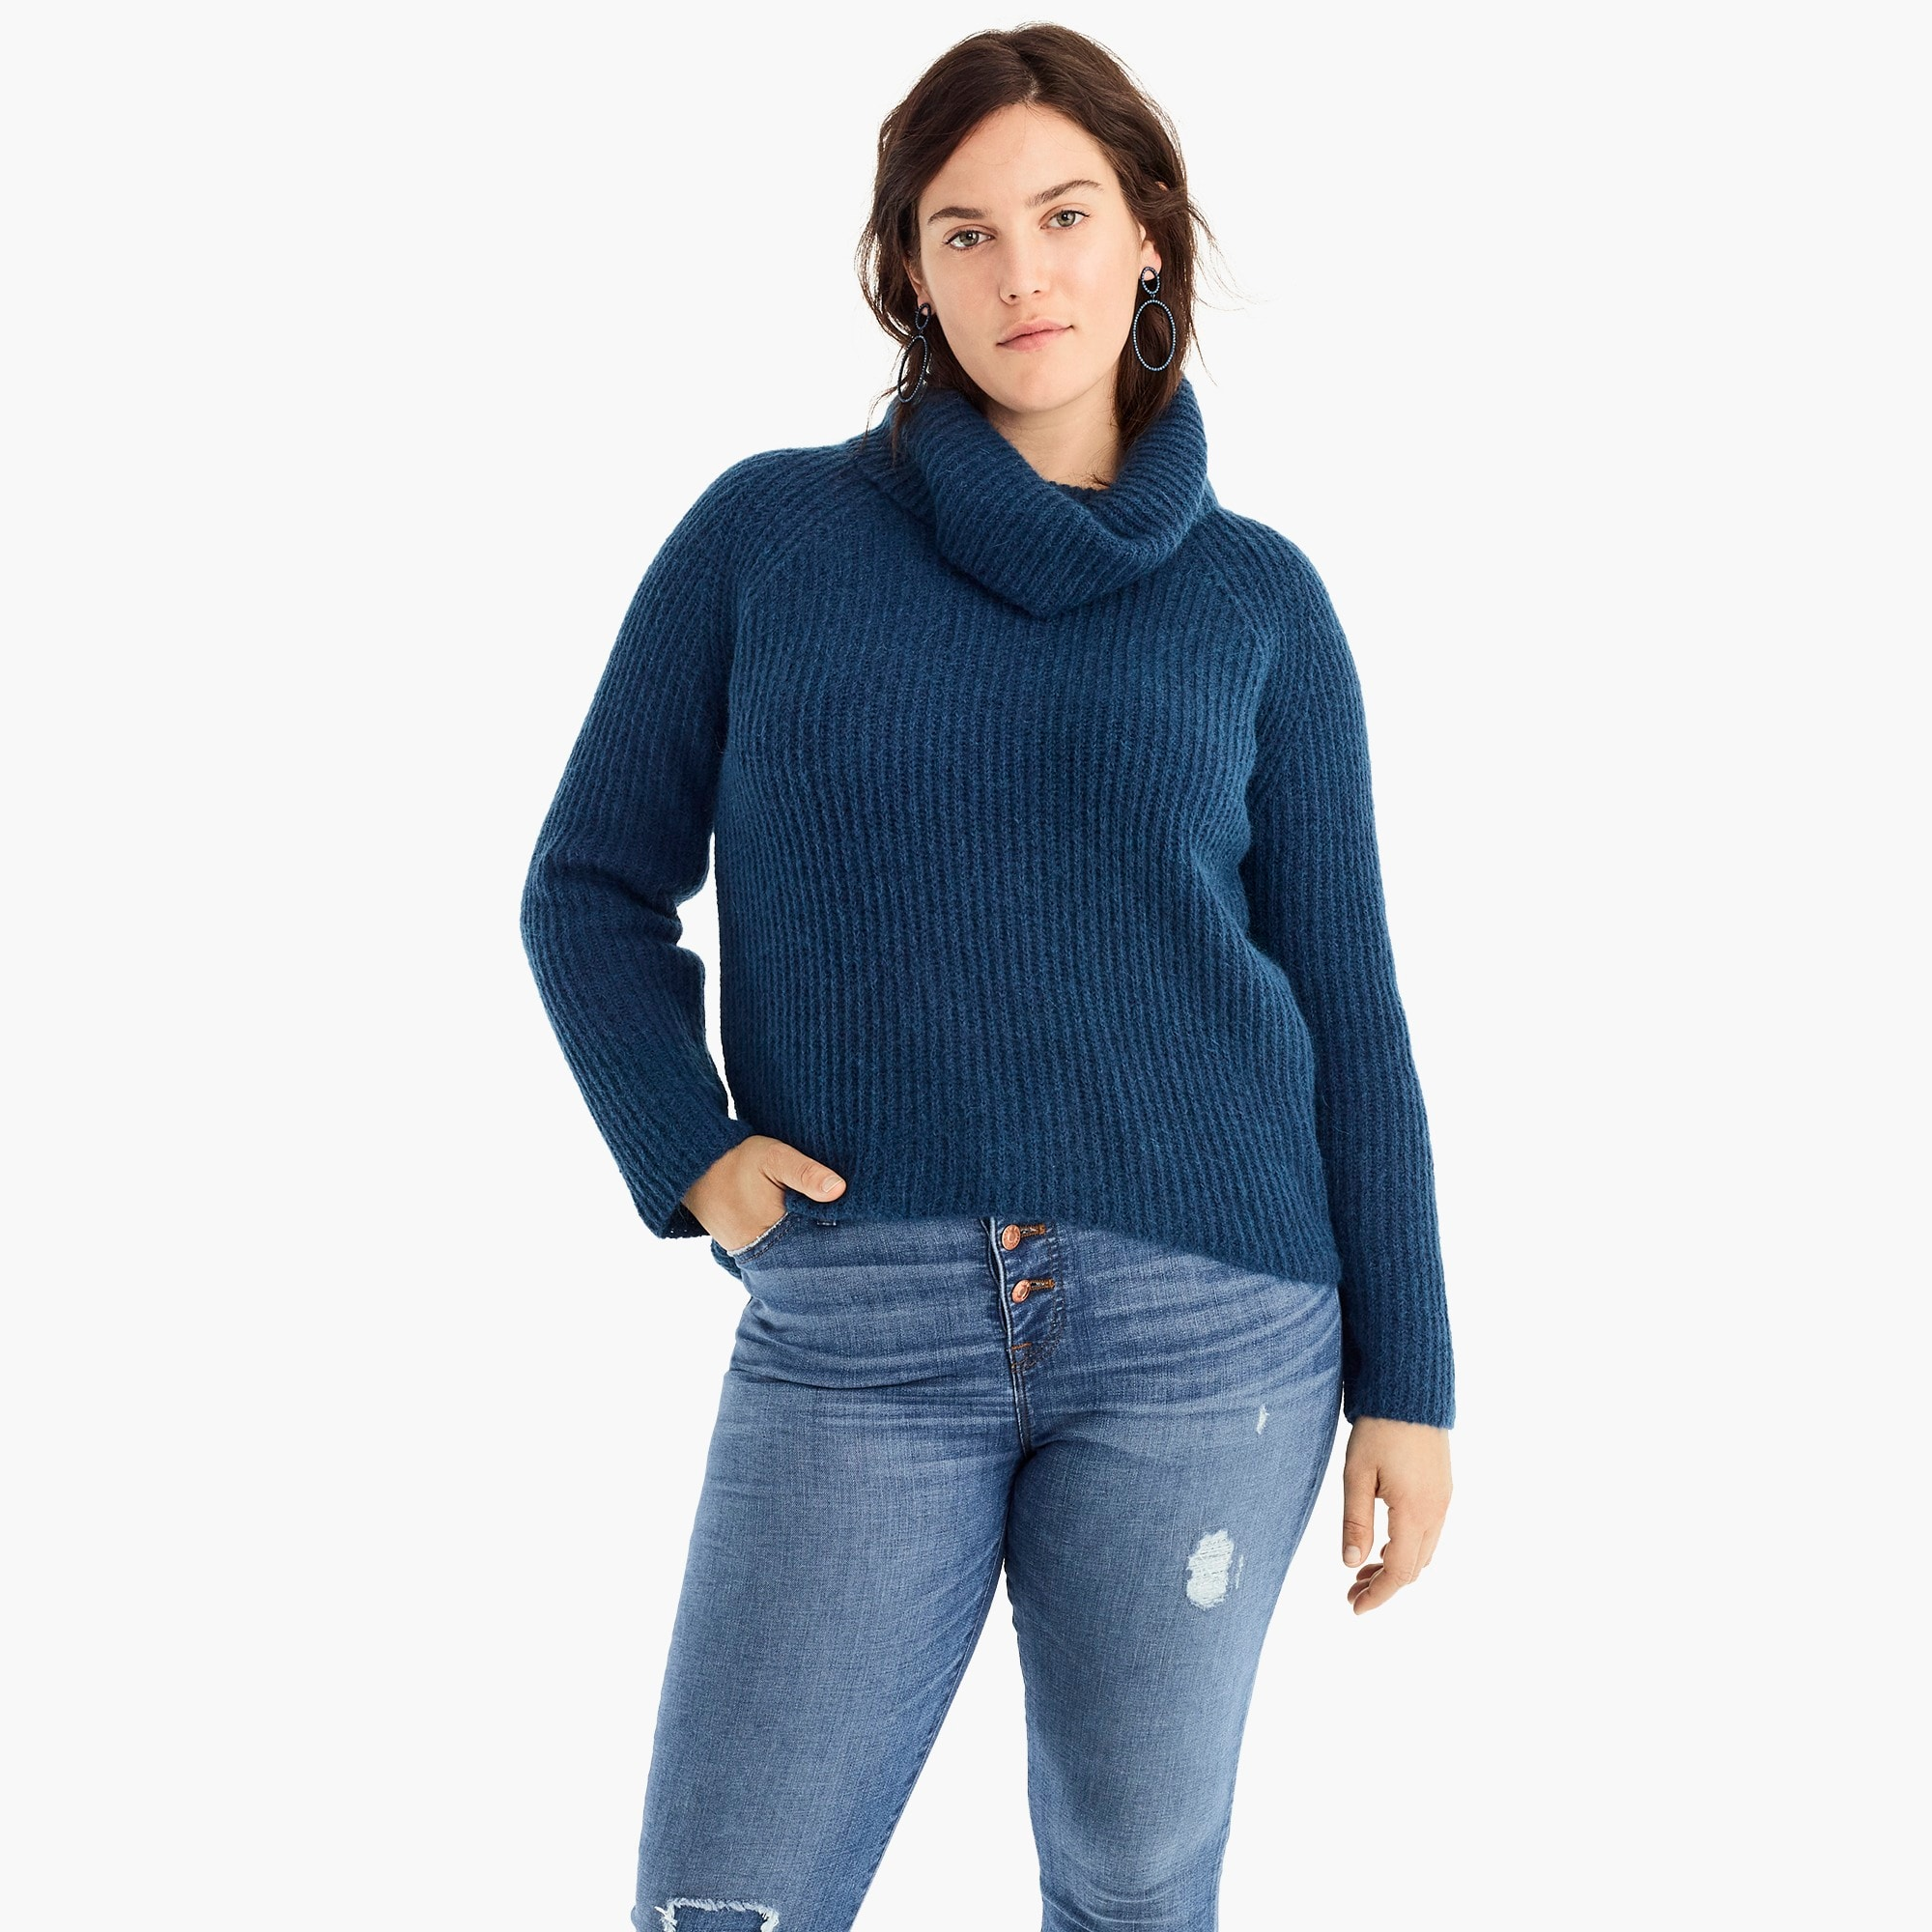 Image 3 for Point Sur ribbed turtleneck sweater